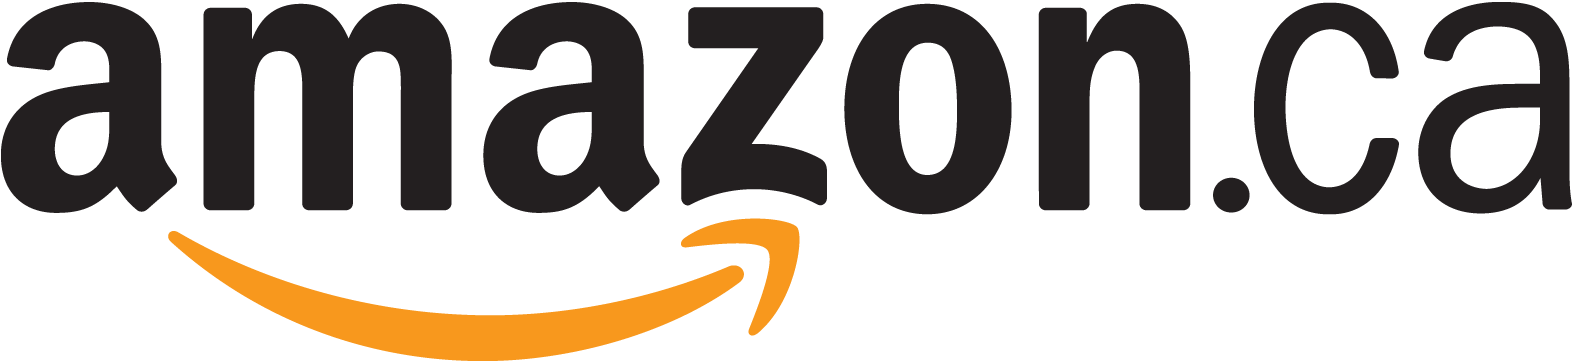 logos and trademarks amazonca corporate gift